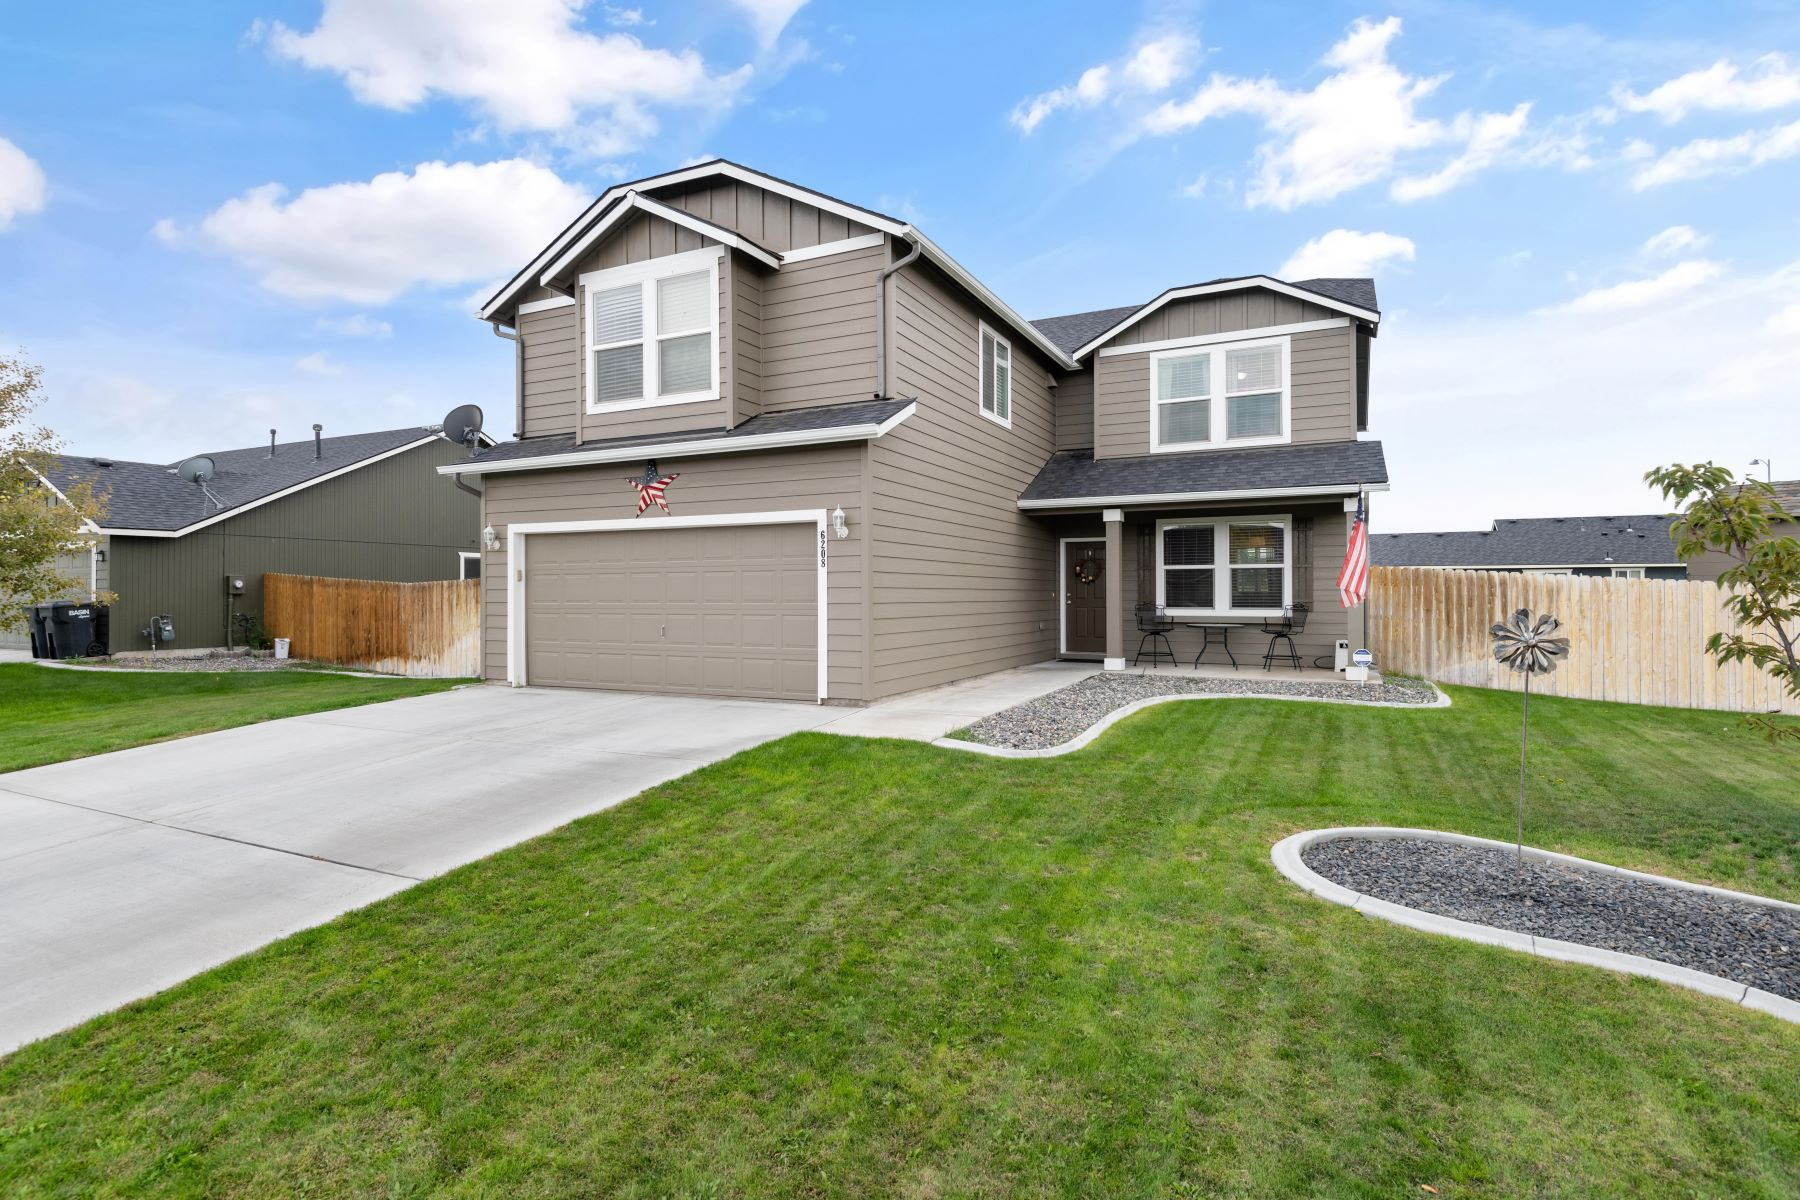 Single Family Homes for Sale at In-Laws Apartment 6208 Westport Lane Pasco, Washington 99301 United States